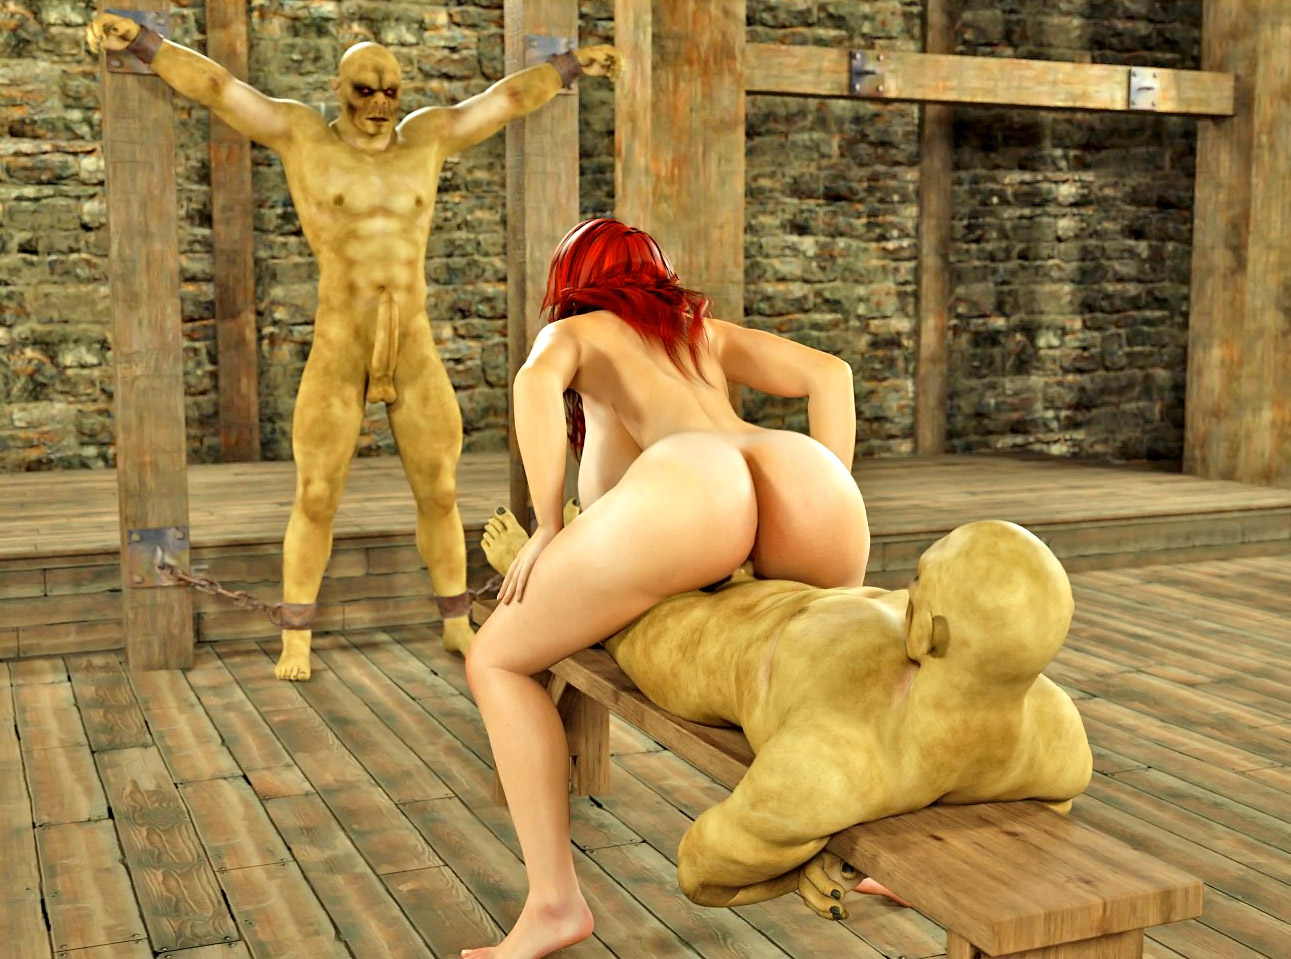 Monster 3dxxx sex video nackt gallery